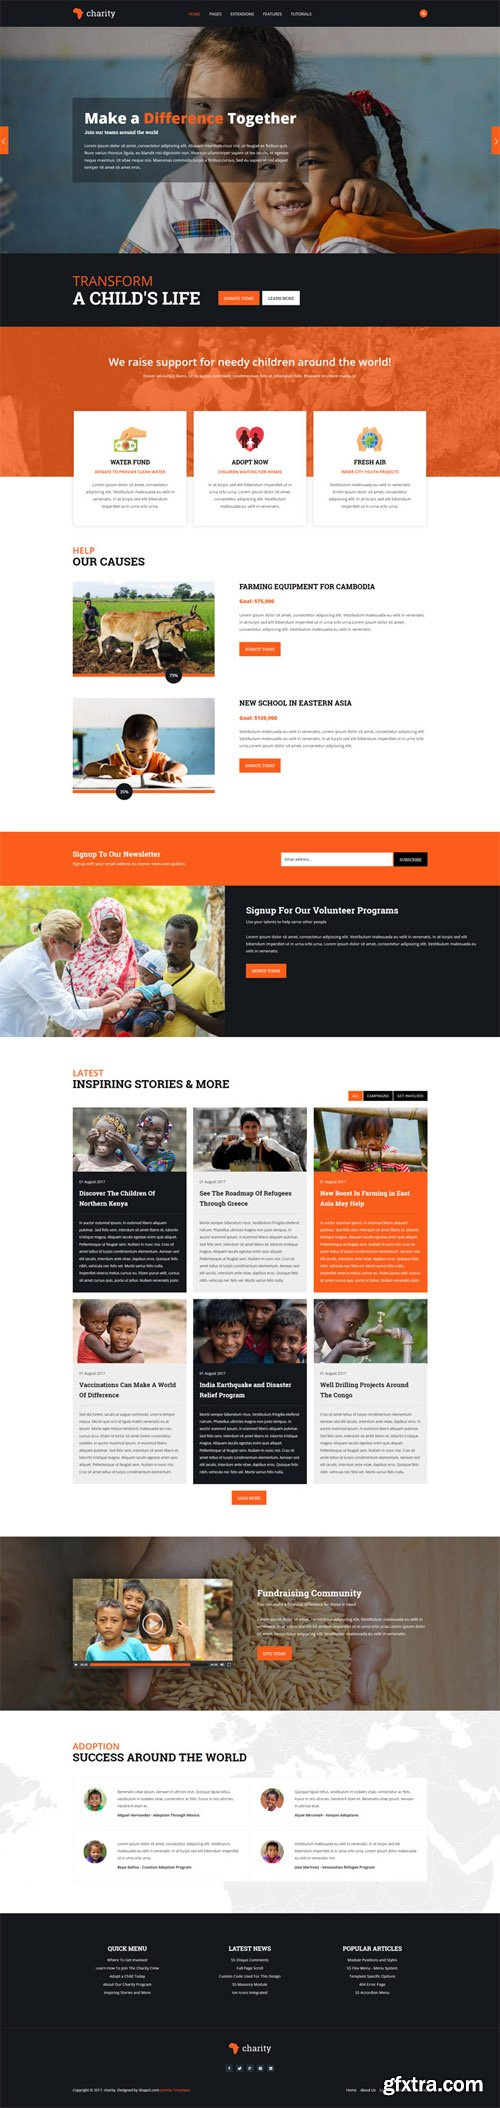 Shape5 - Charity v1.0.3 - Joomla Template